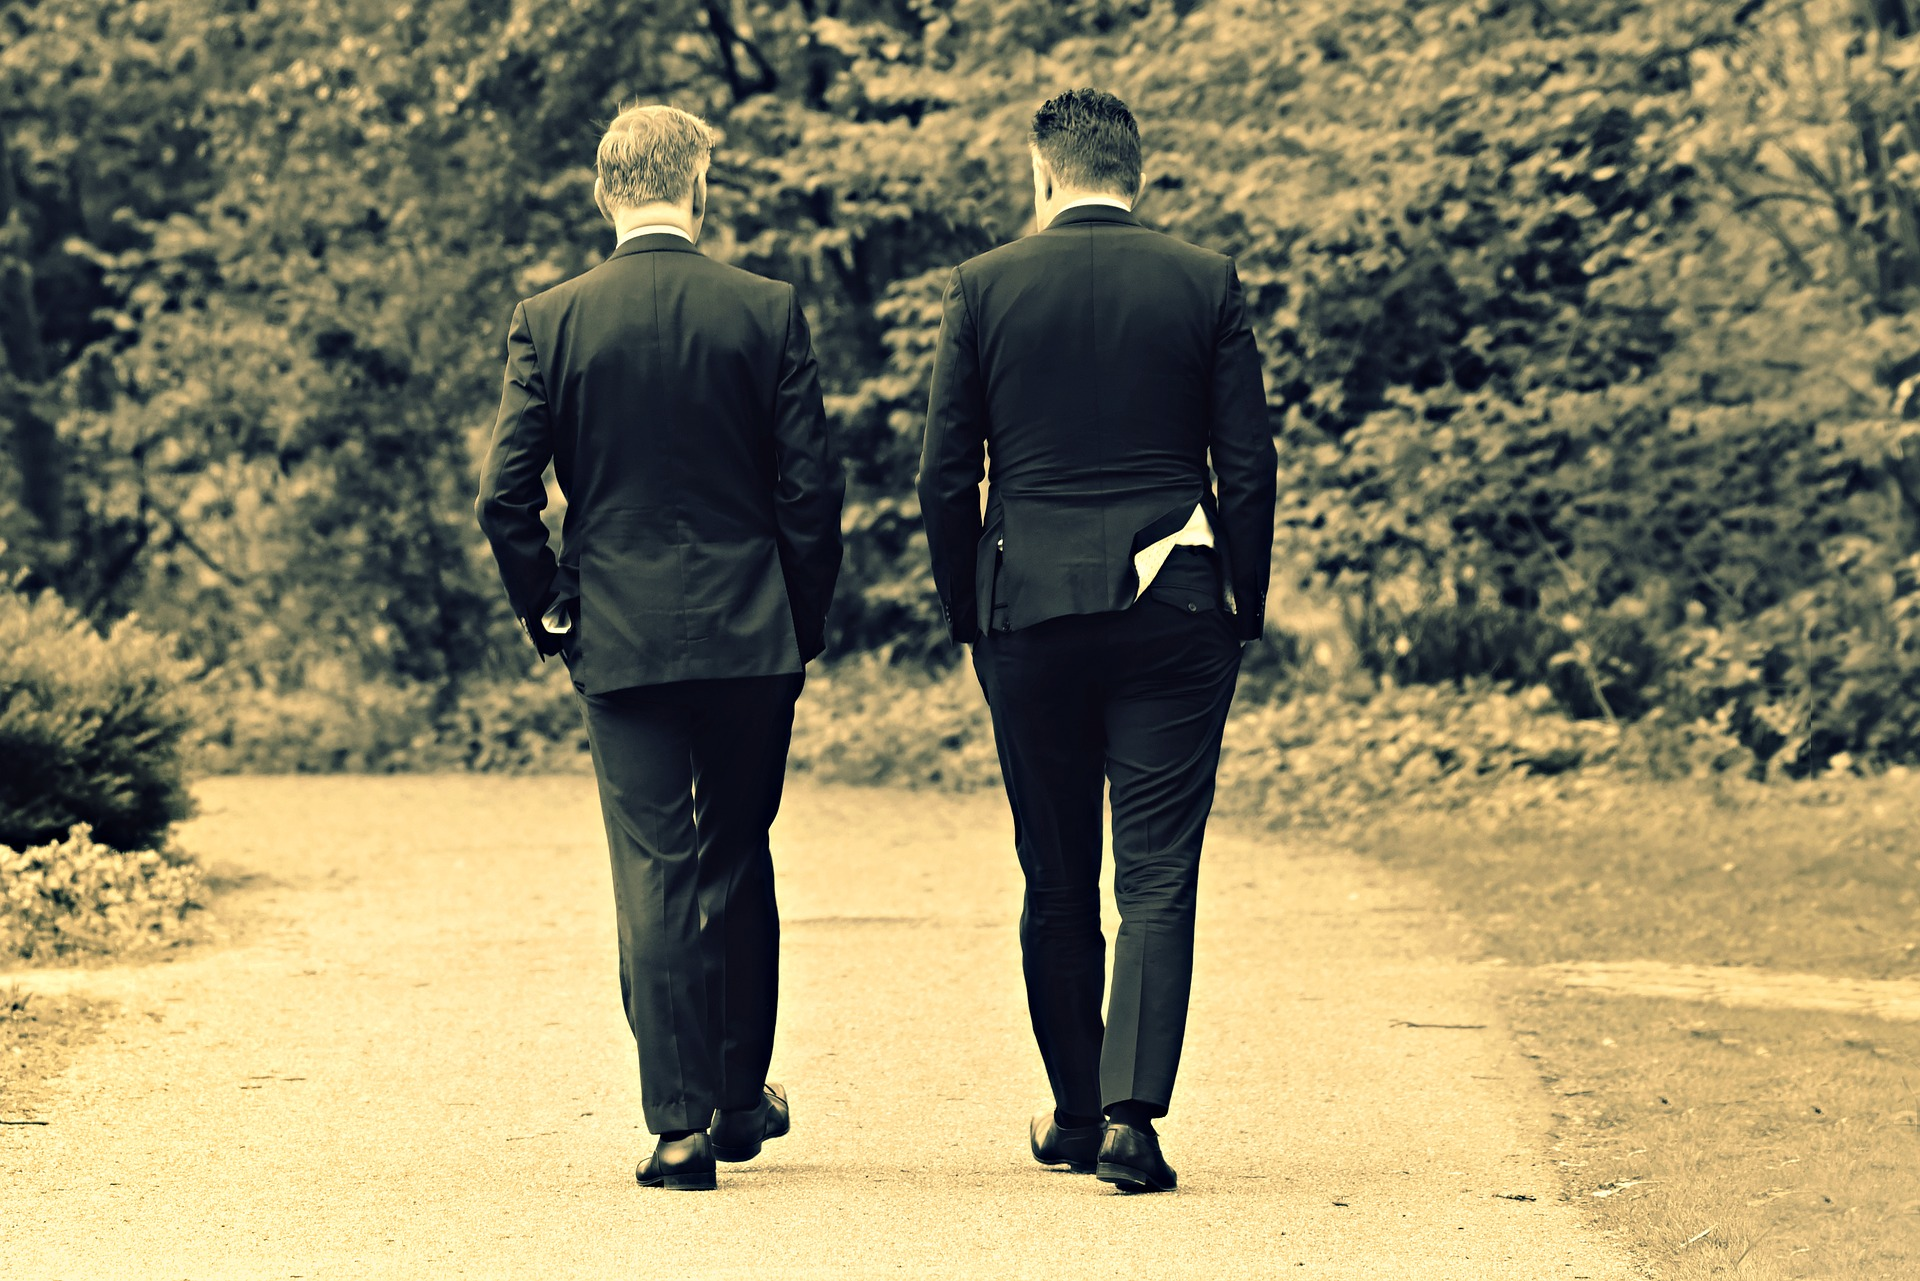 Images shows the back of two men in suits walking in a park